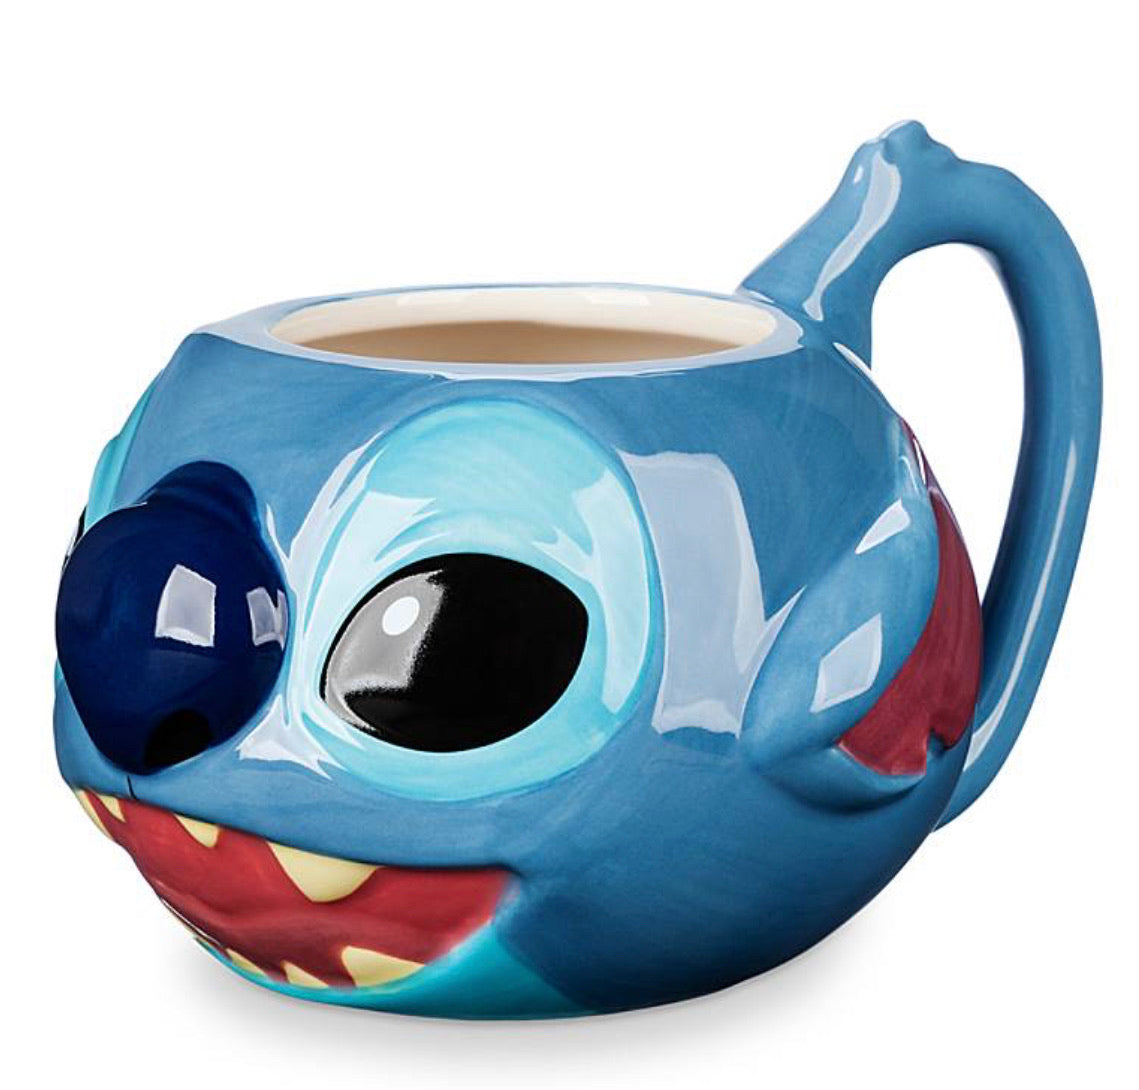 Lilo & Stitch Set Taza y Cuchara